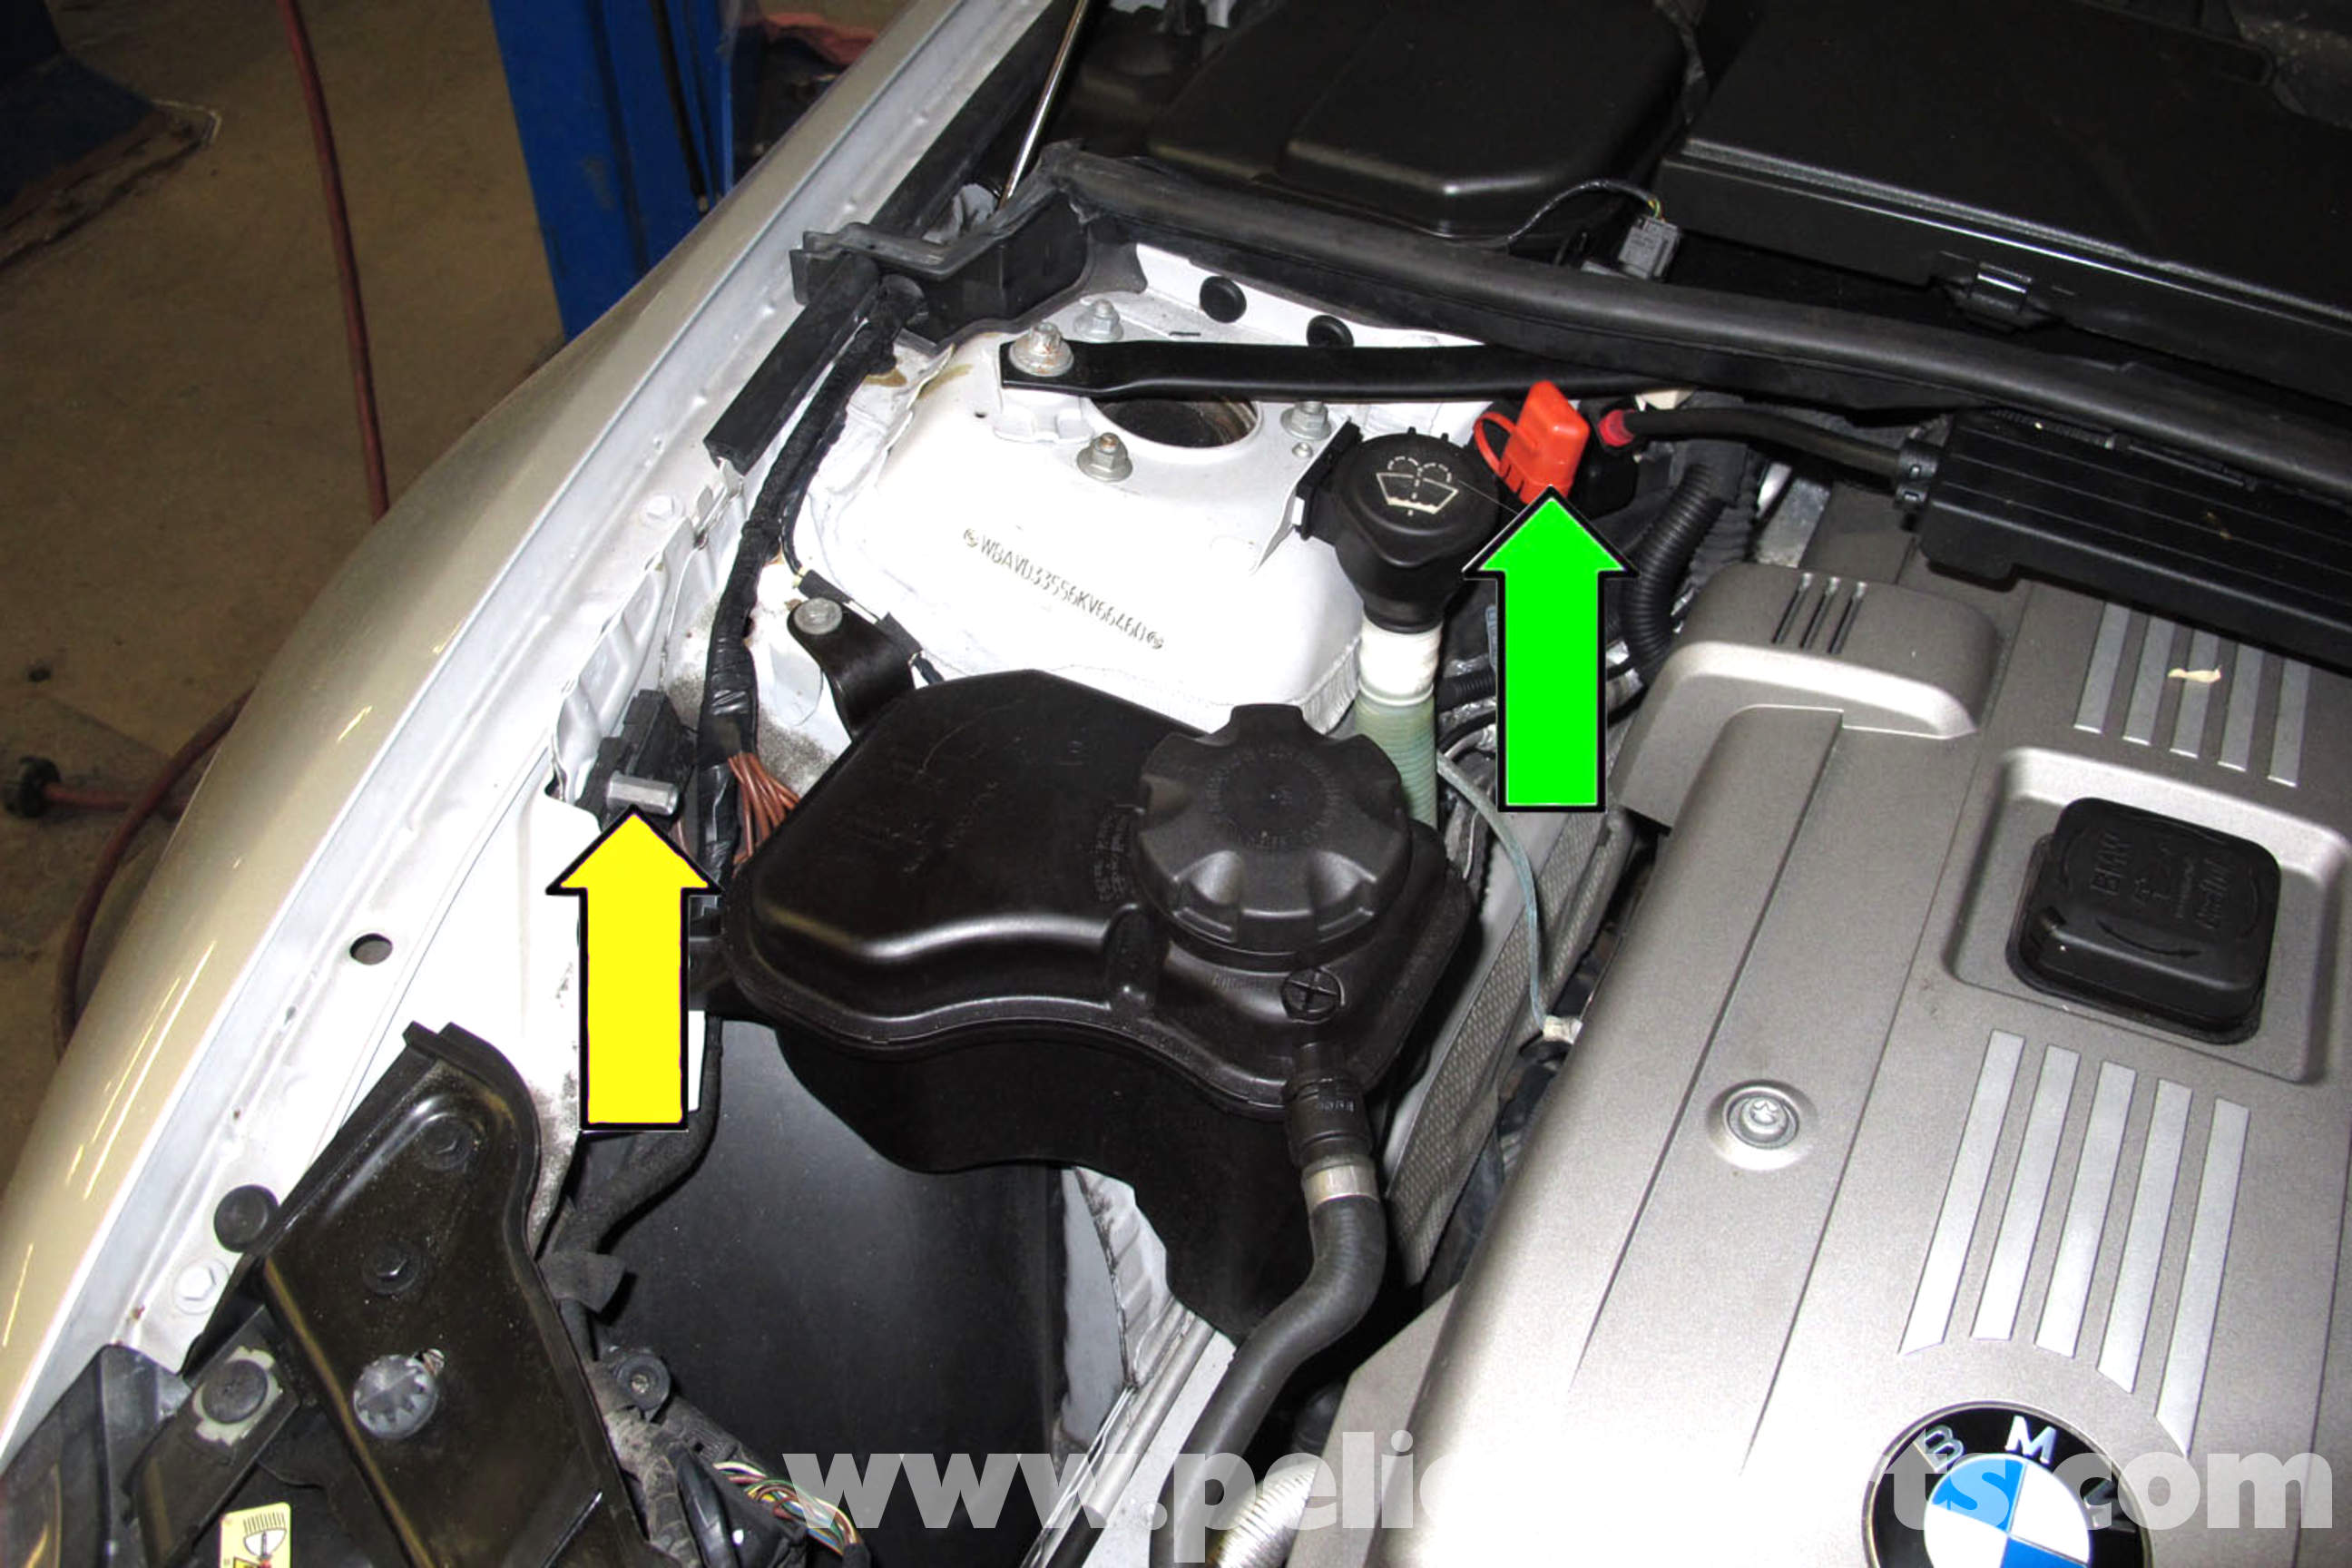 2011 Bmw 328i Fuse Box Diagram Wiring Library 335i Pic02 E90 Battery Replacement E91 E92 E93 Pelican Parts Diy